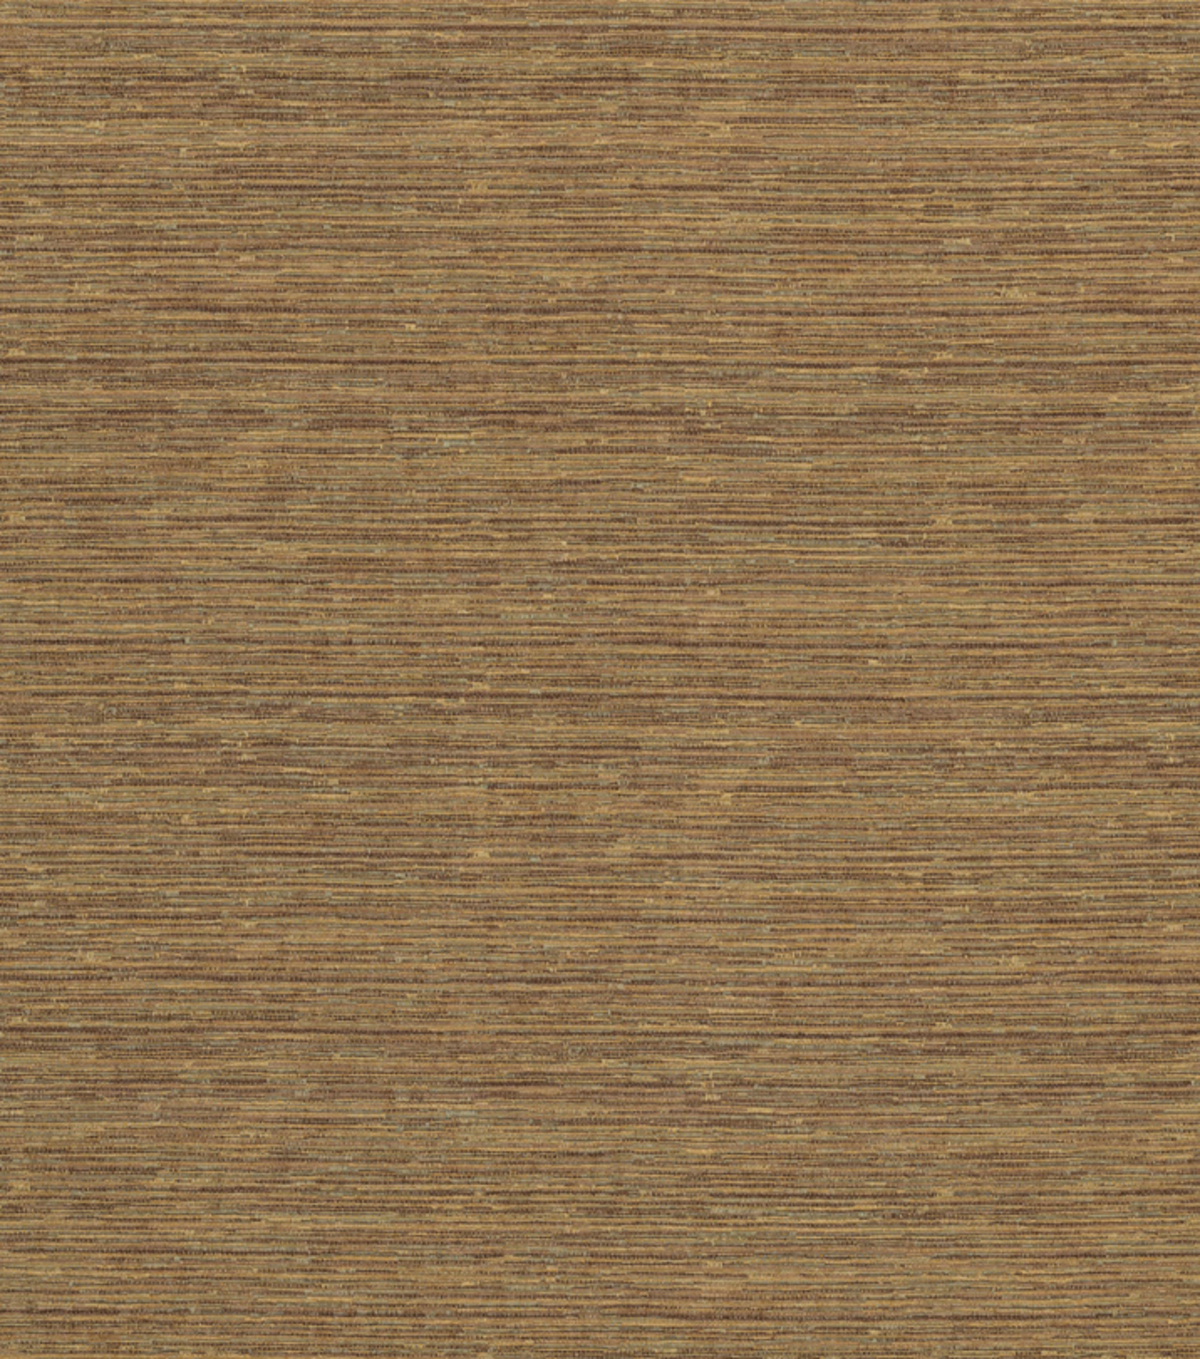 Home Decor 8\u0022x8\u0022 Fabric Swatch-Caledonia Ginger